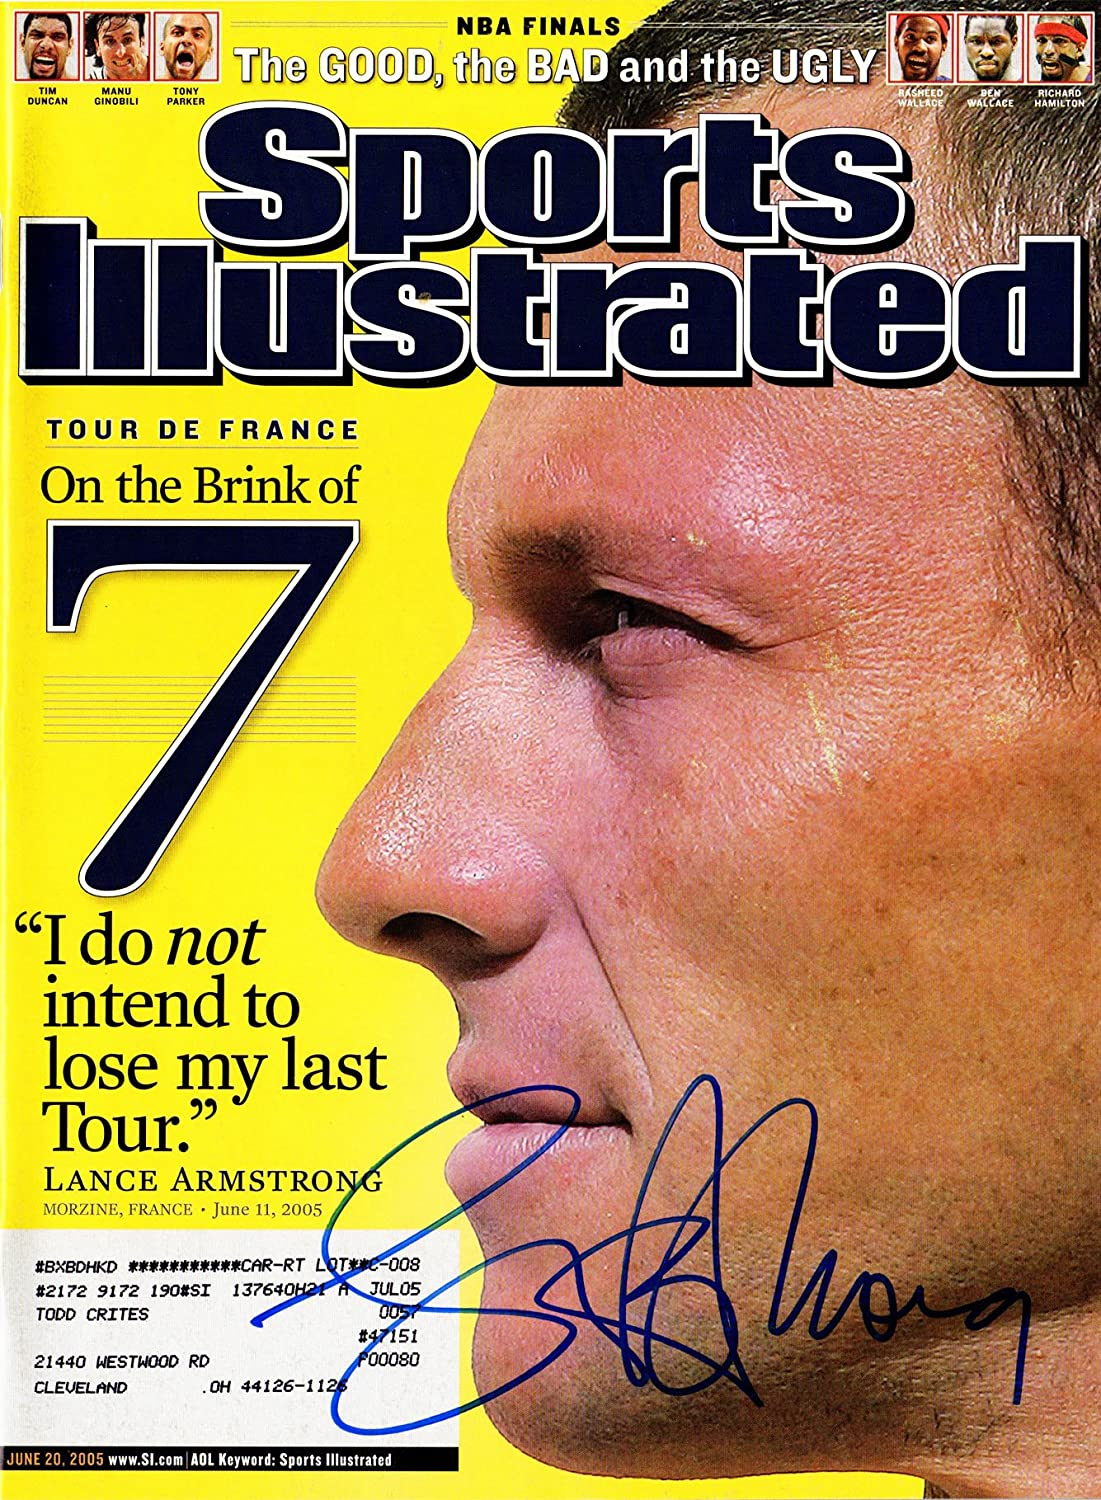 Lance Armstrong June 20, 2005 'On The Brink Of 7' Original Sports Illustrated Magazine